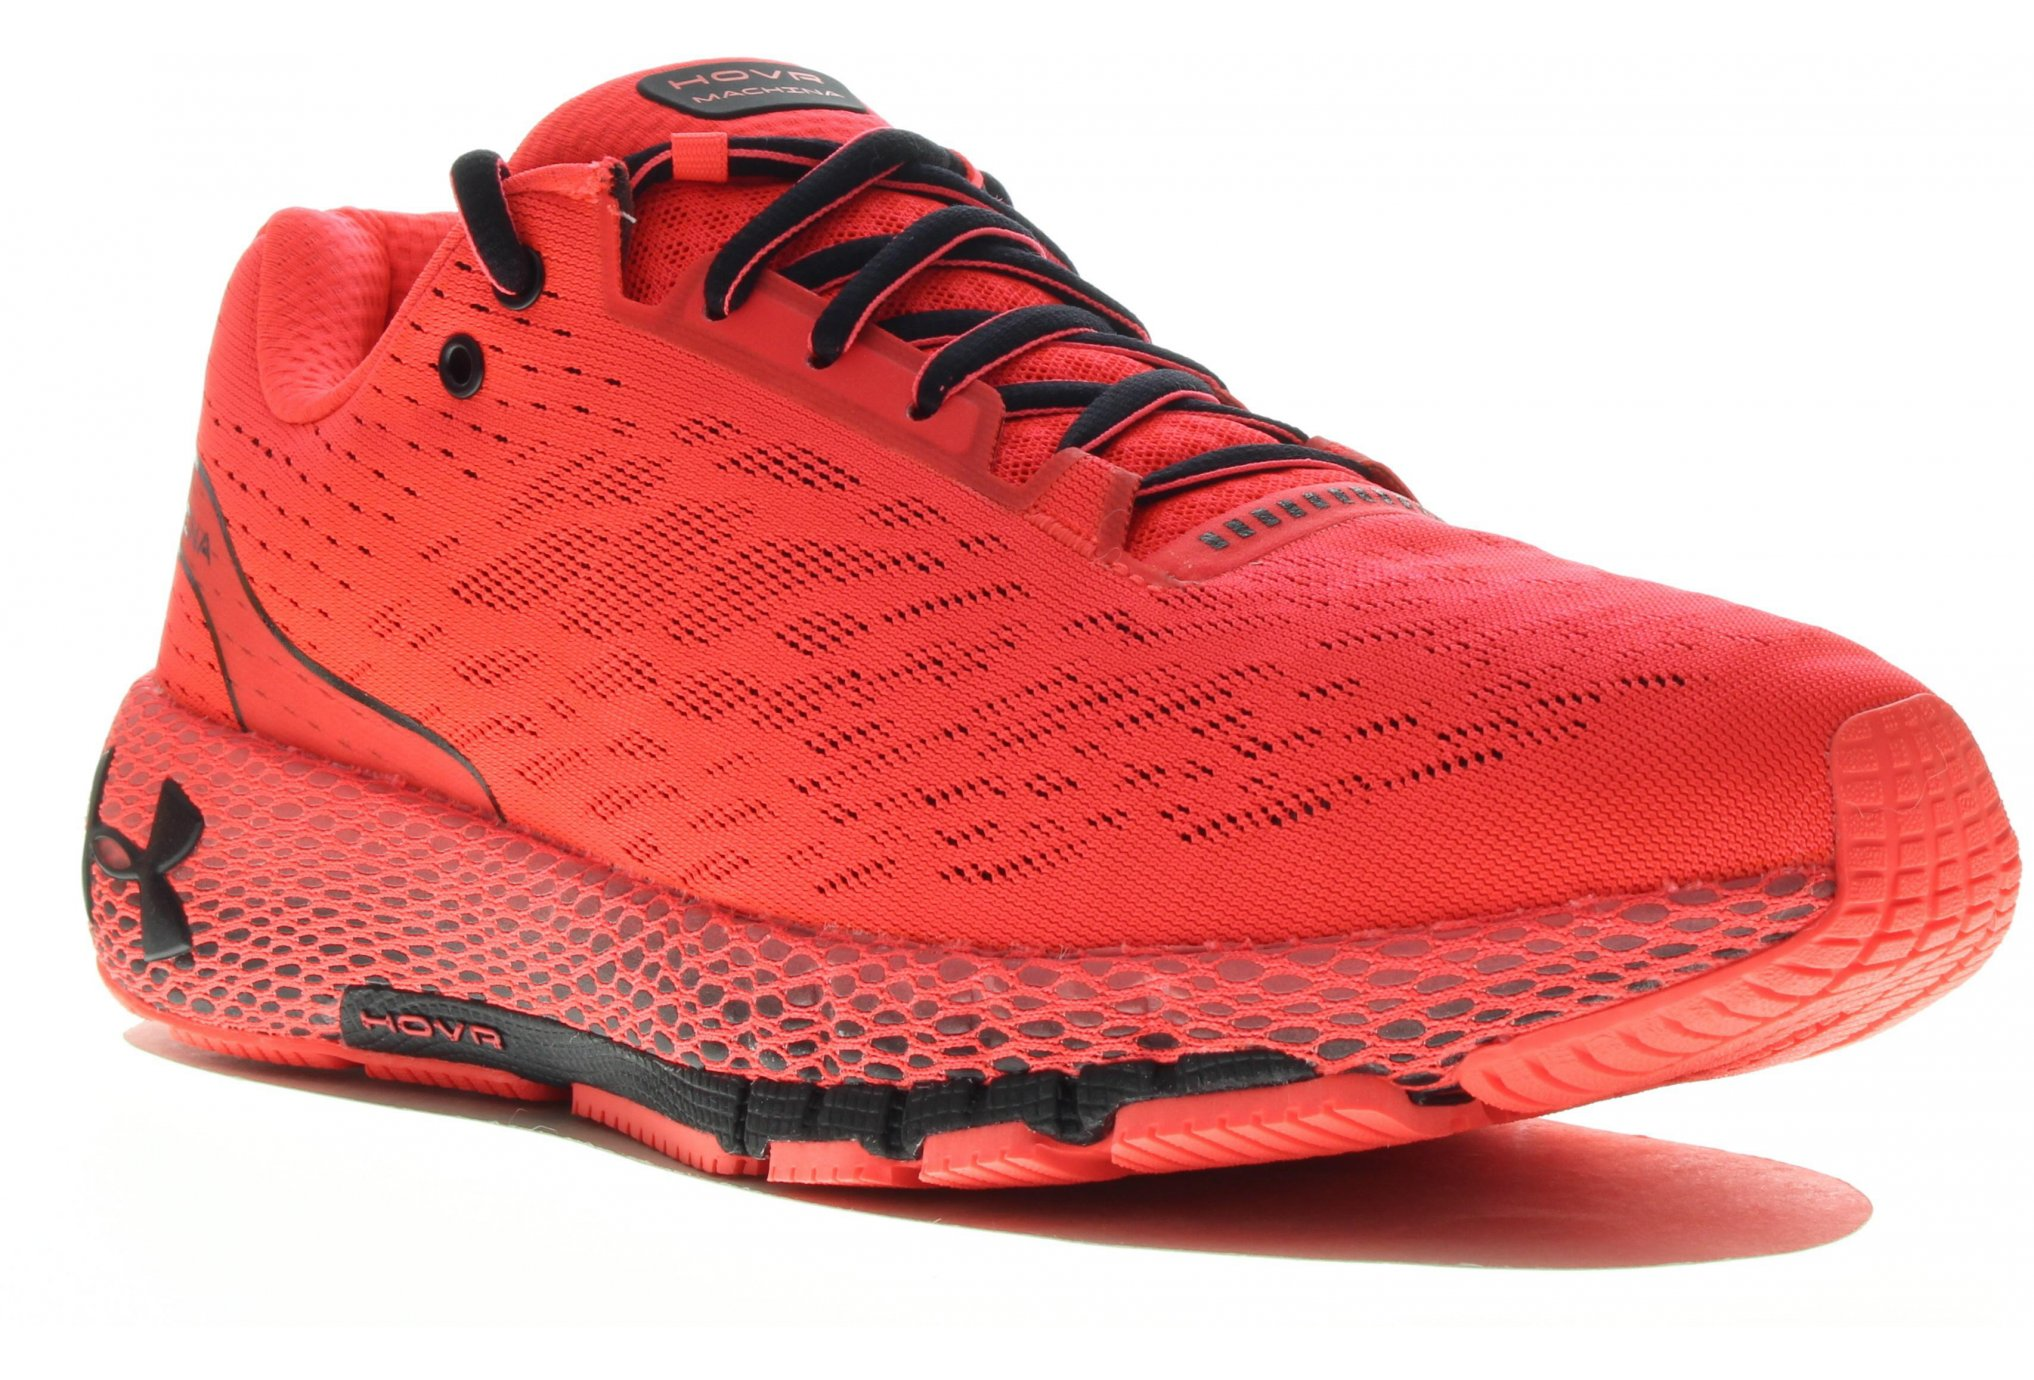 Under Armour HOVR Machina M Chaussures homme